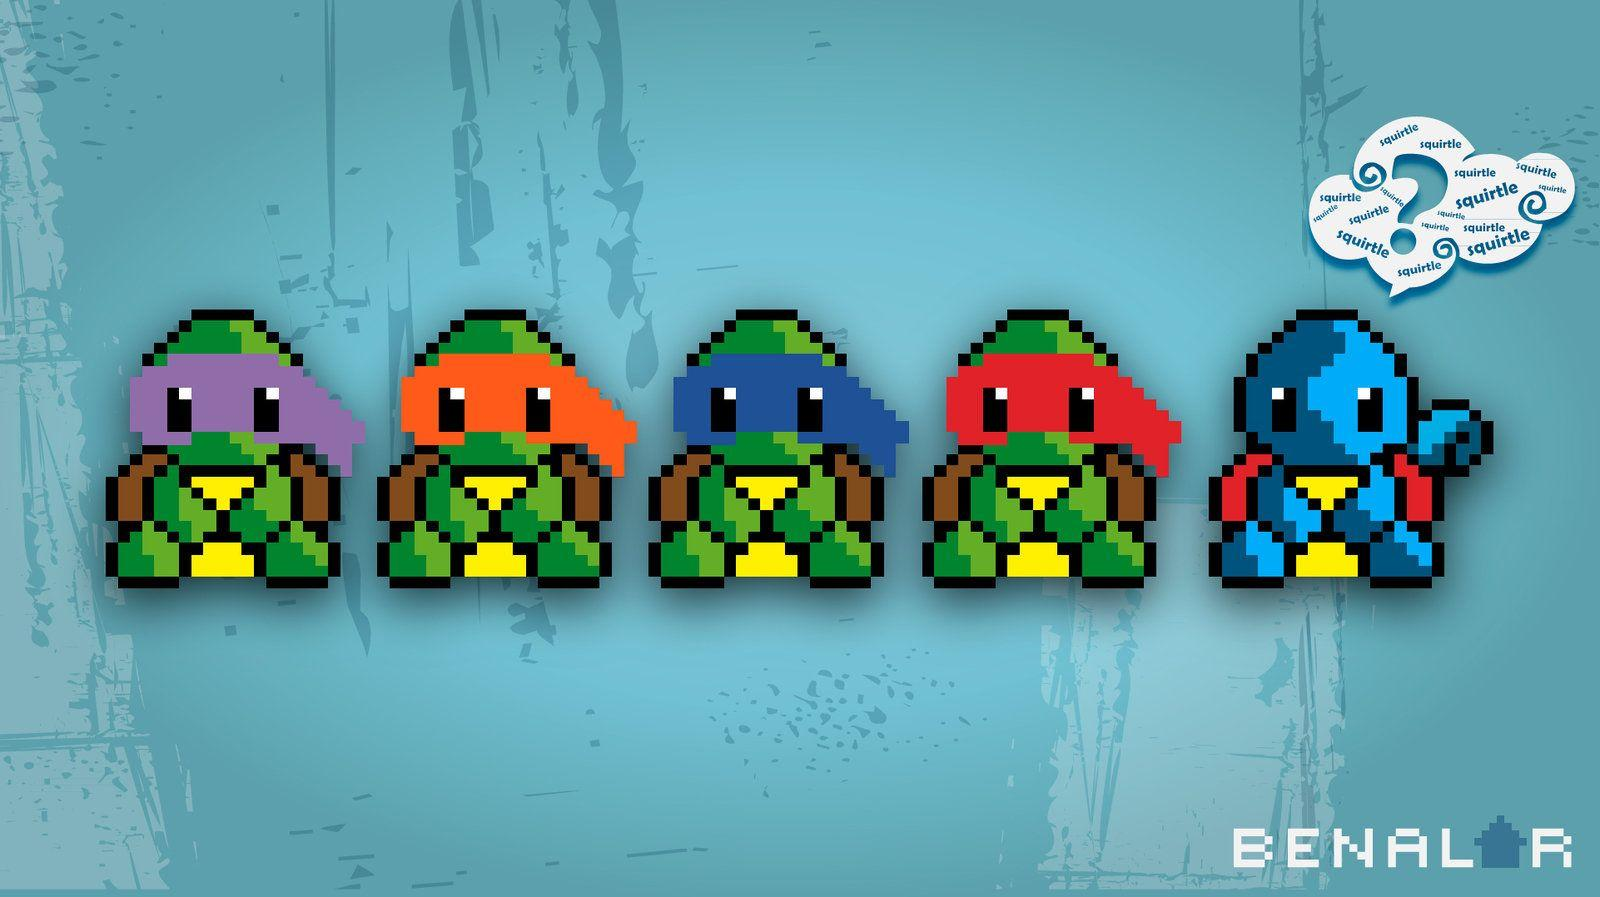 tmnt squirtle? - Wallpaper by pericles1 on DeviantArt